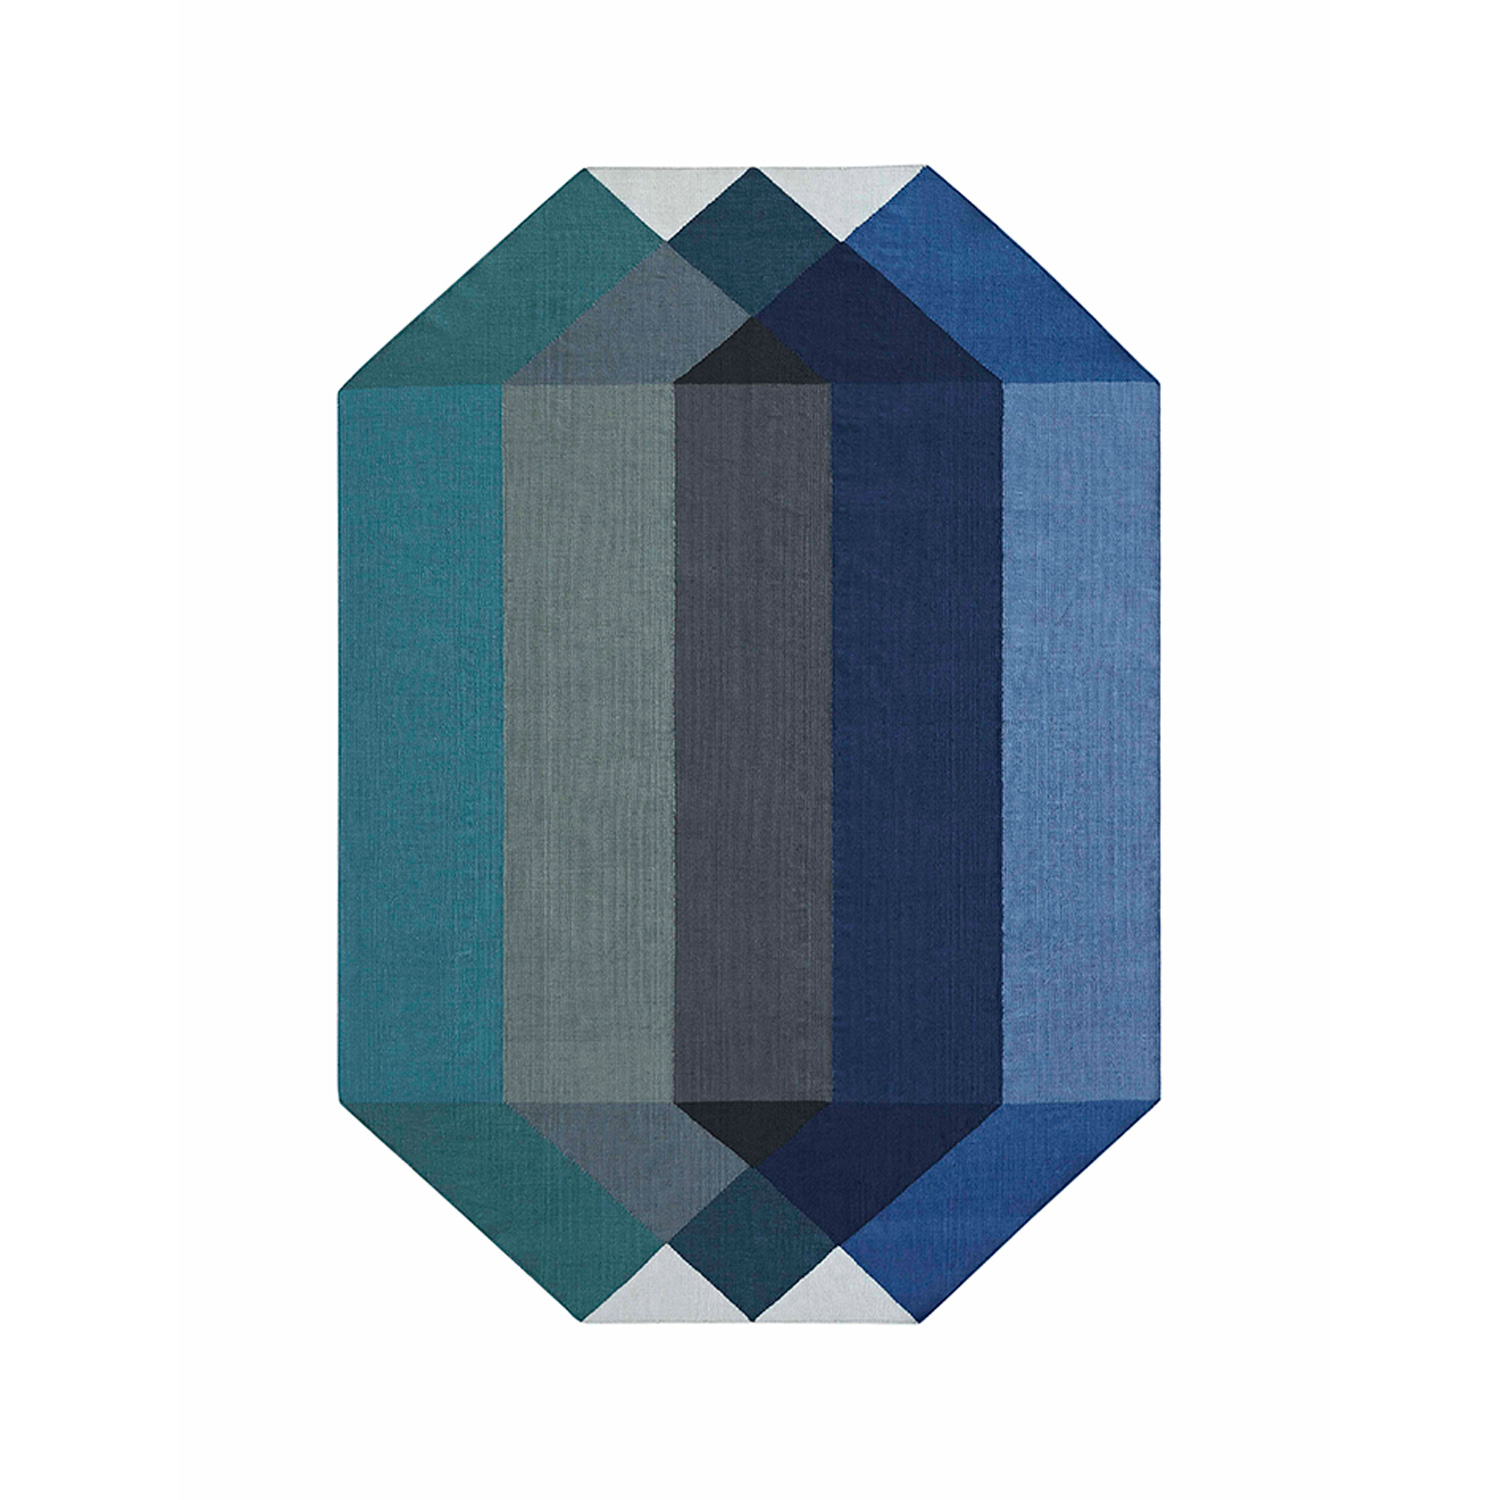 Diamond Rug - Diamond is Charlotte Lancelot's new collection of outdoor kilims for GAN, made from 100% recycled PET. The designer's goal was to create a multi-faceted coloured diamond, thanks to the superposition of different translucent geometric figures. The result offers fascinating visual effects of transparency and gradients that show that beauty and sustainability, at GAN, always go hand in hand. The manufacturing technique is Kilim and due to the handmade nature of the GAN product, slight variations in size, colour, finish are normal. 